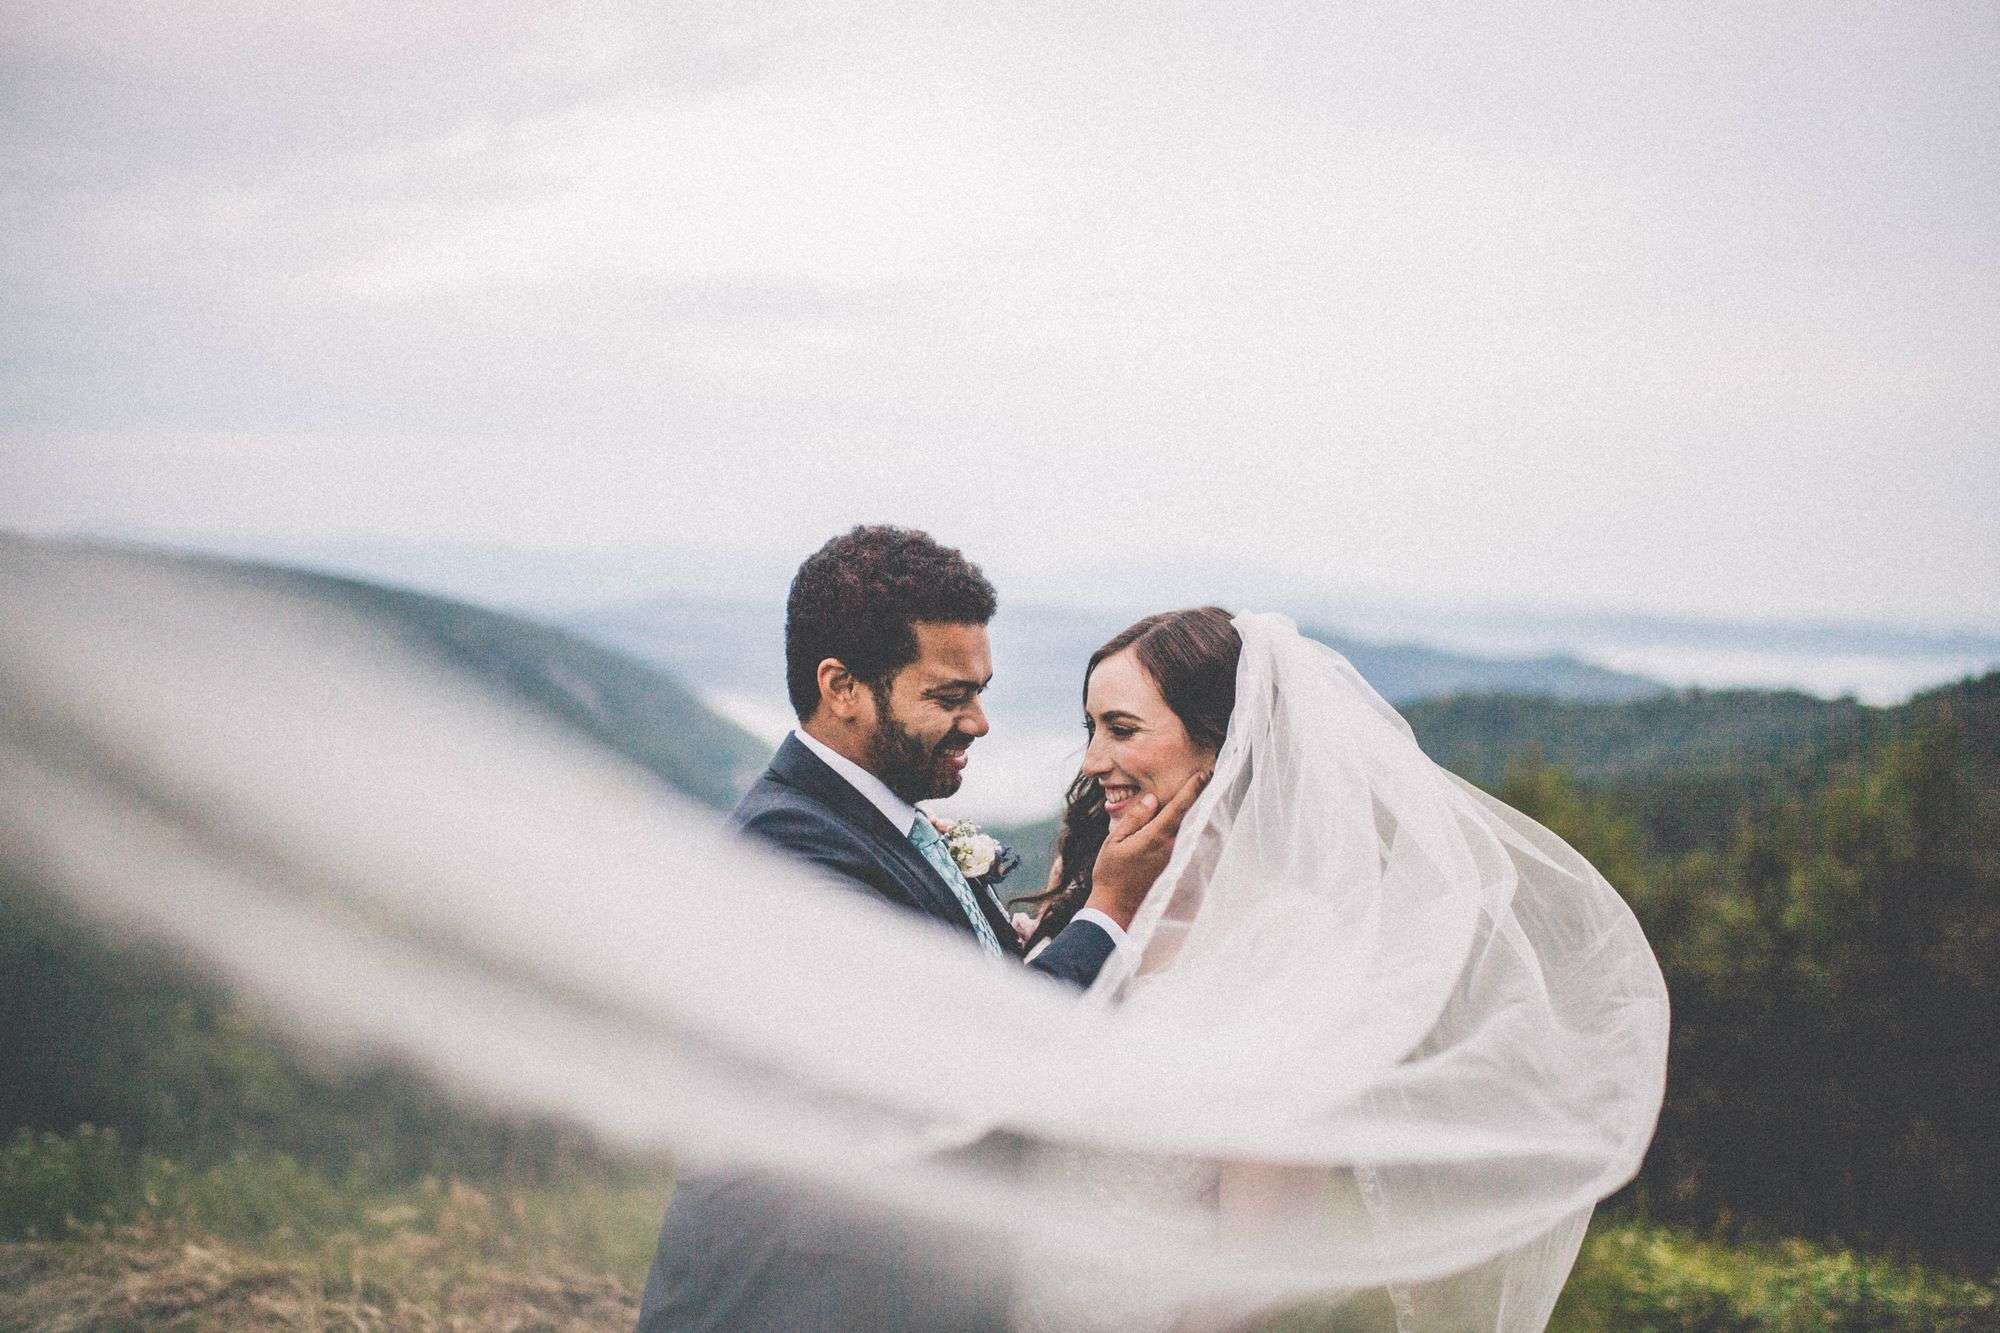 wedding photographer croatia istria dalmatia